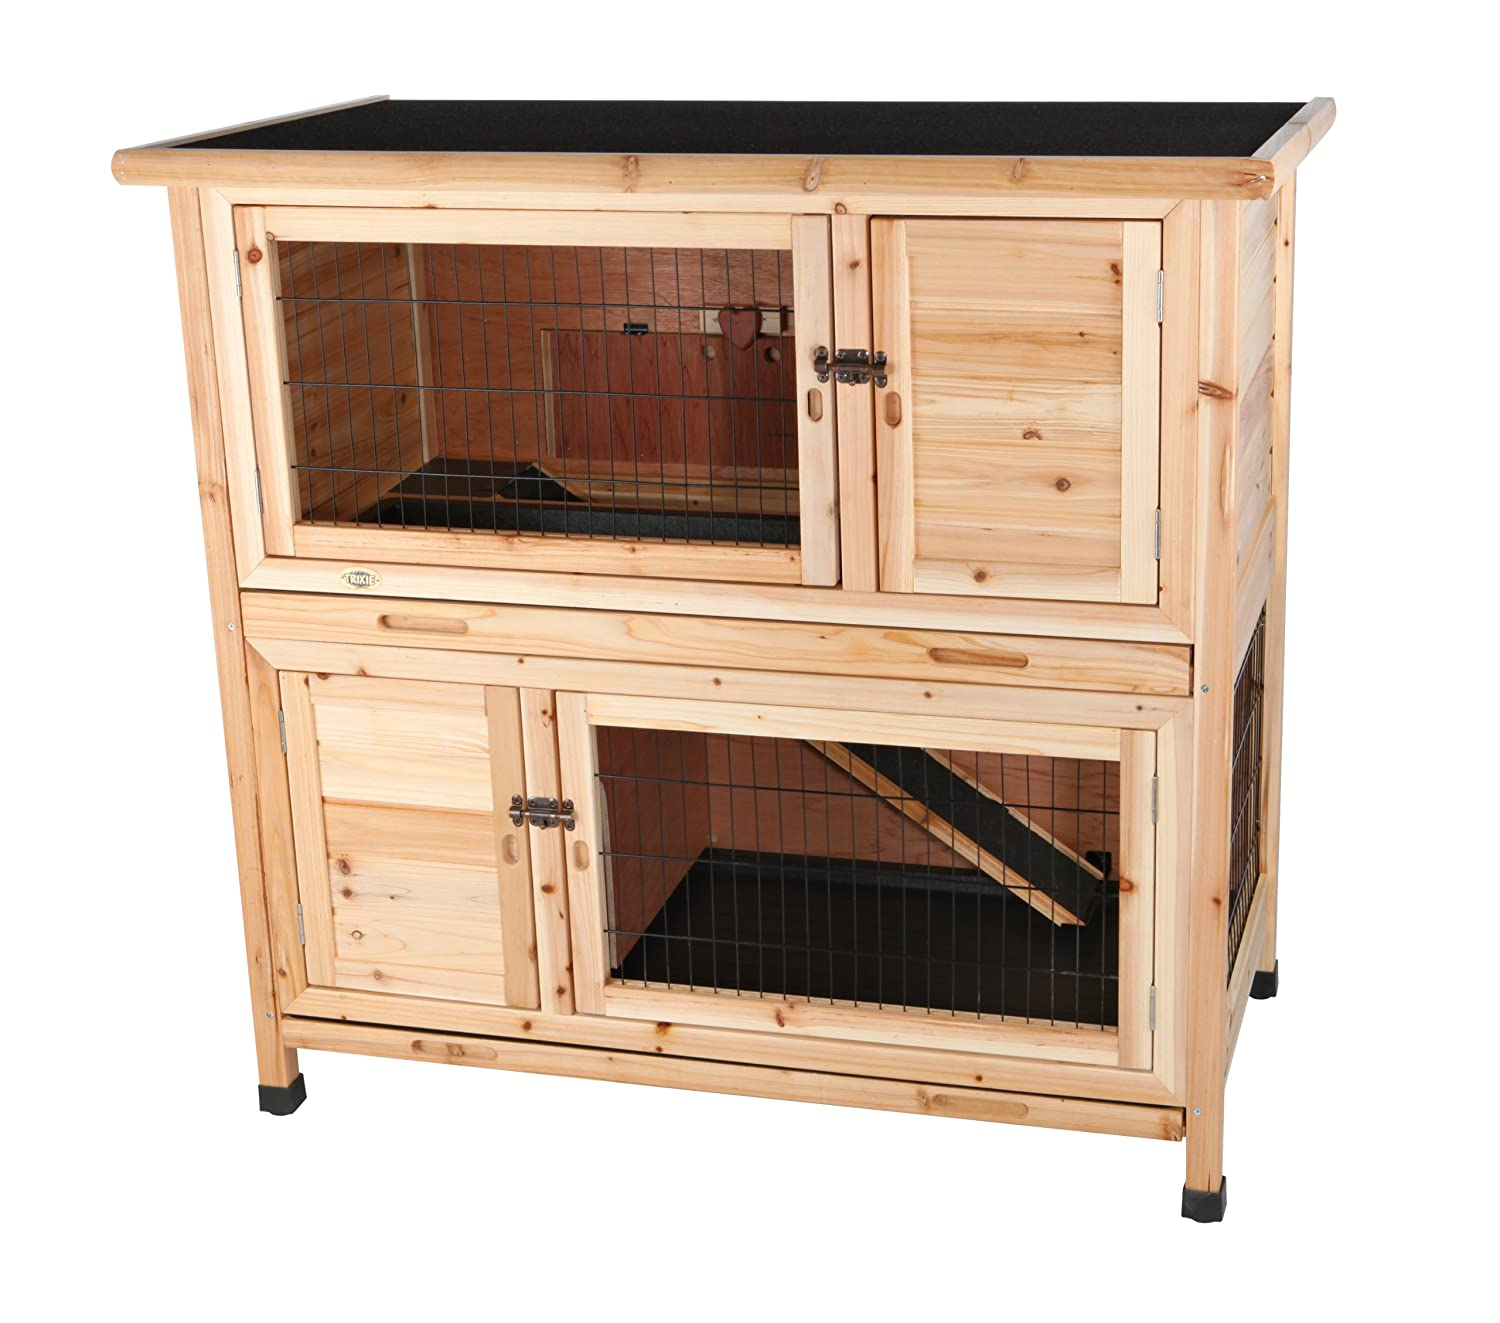 ebay animal backyard pet sale handmade for cage hutches hutch rabbit wooden coop s itm poultry house hen chicken